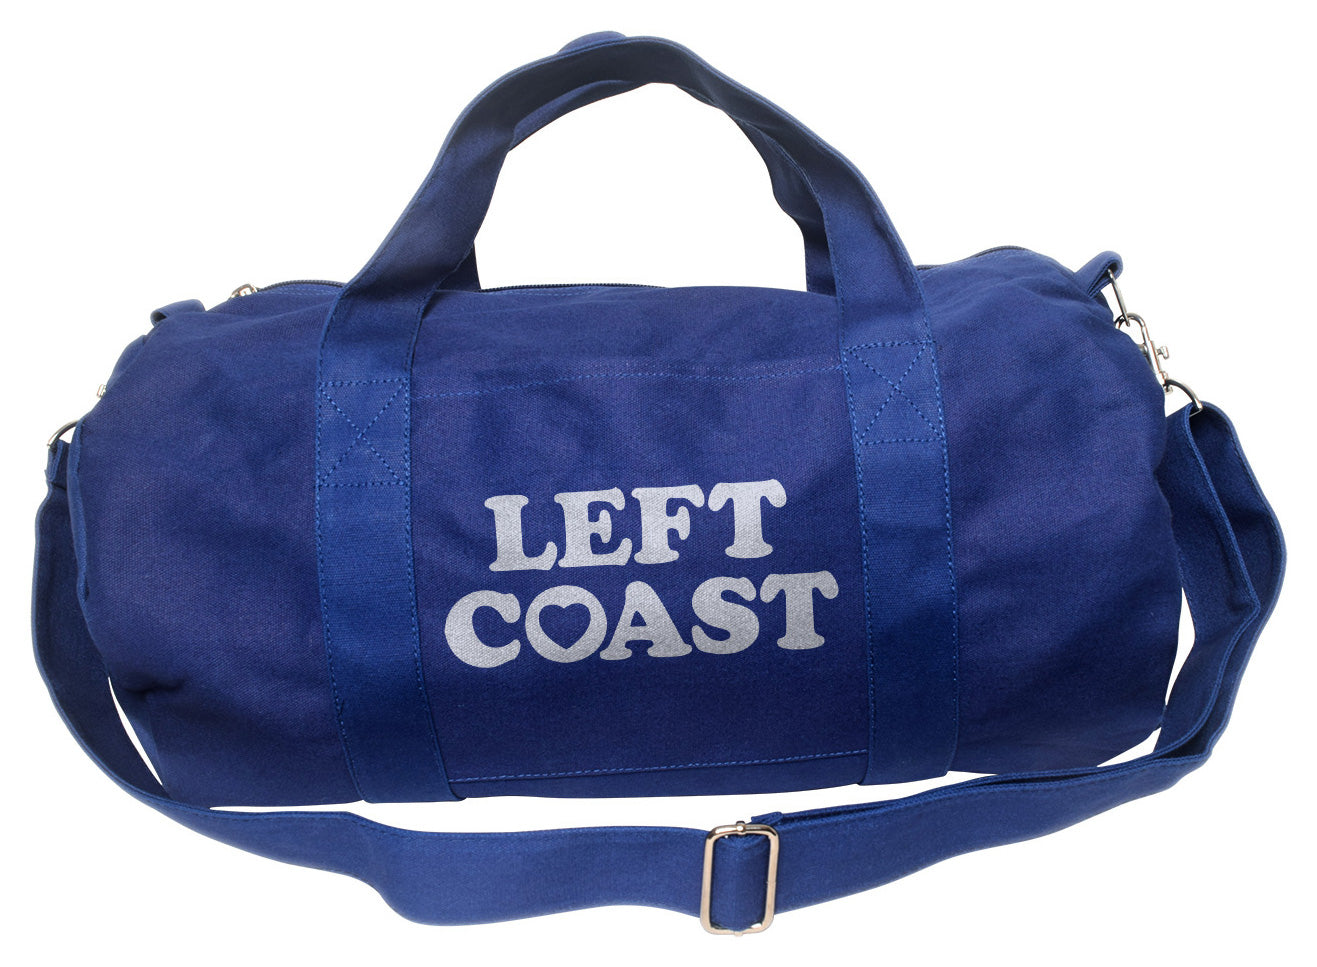 Left Coast Duffel Bag